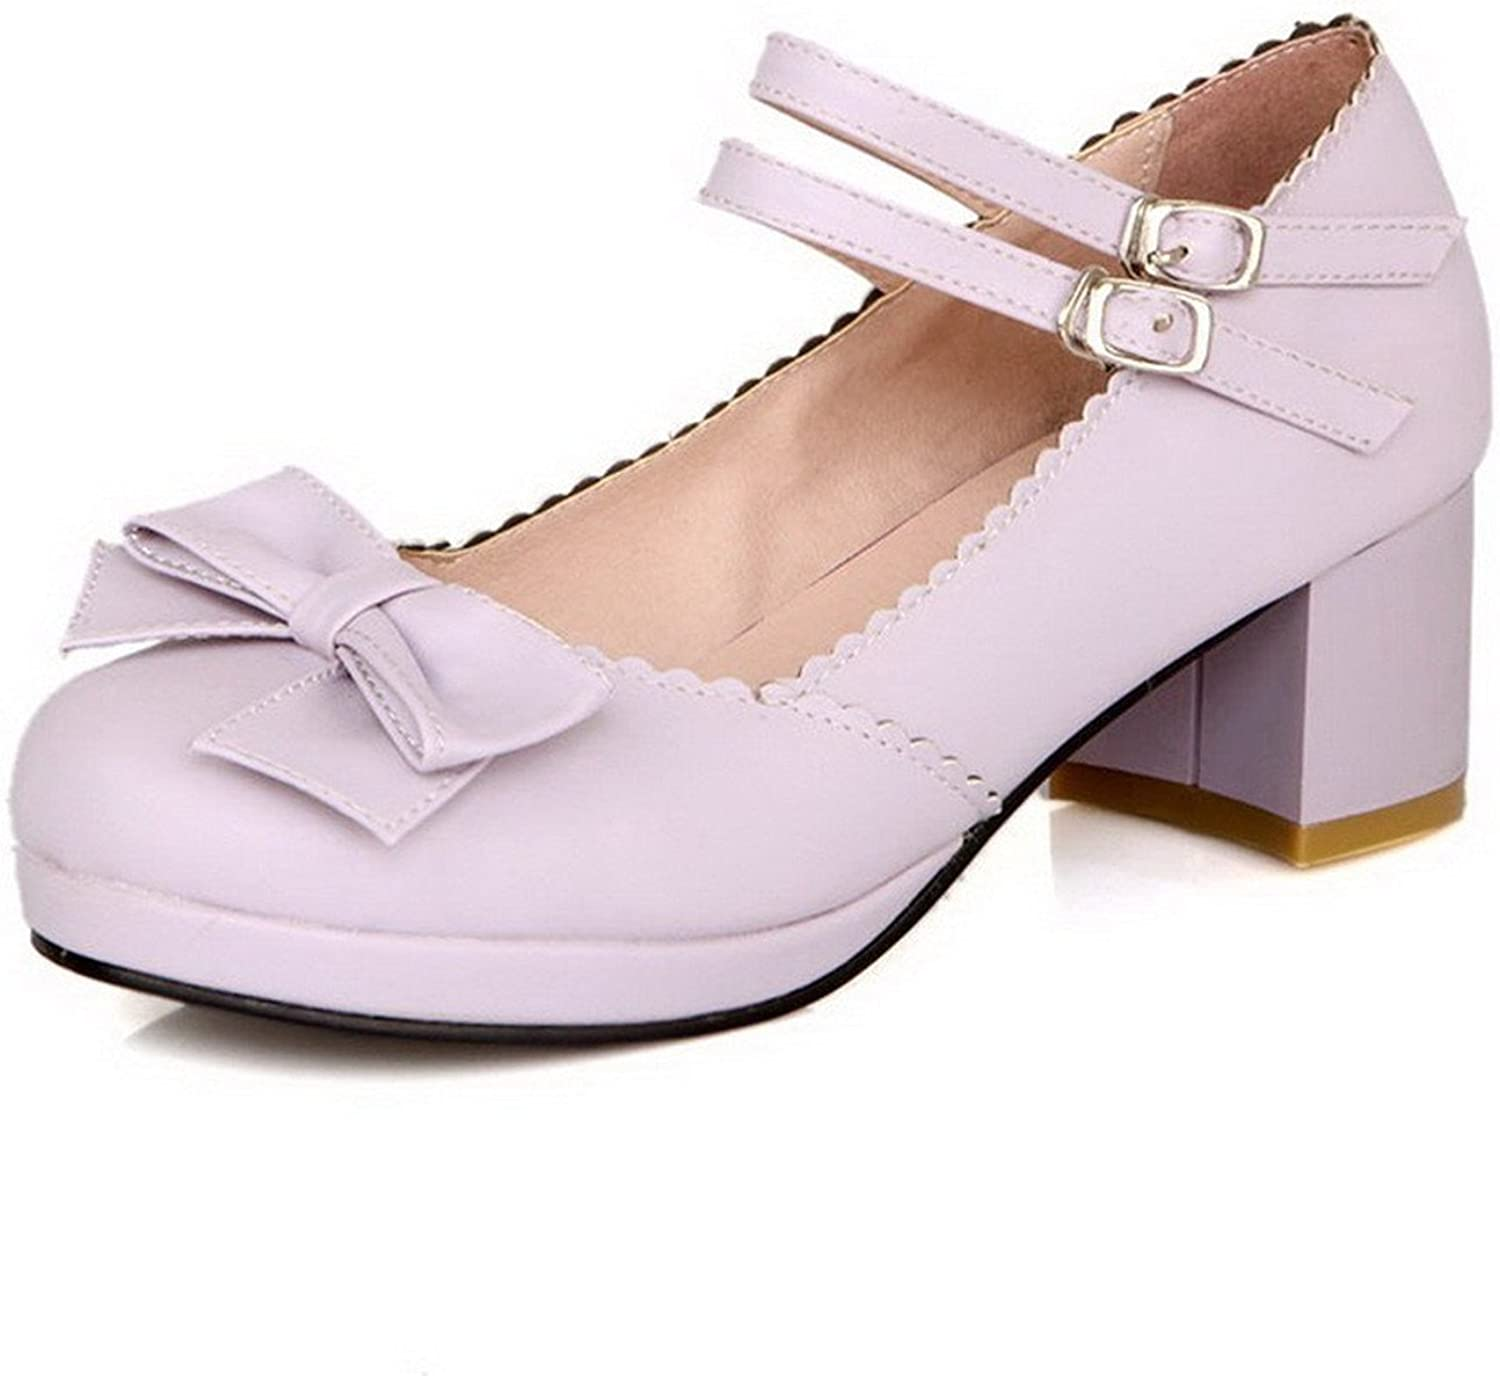 WANabcMAN Comfortable Women's Buckle Kitten Heels Pu Solid Round Closed Toe Pumps-shoes